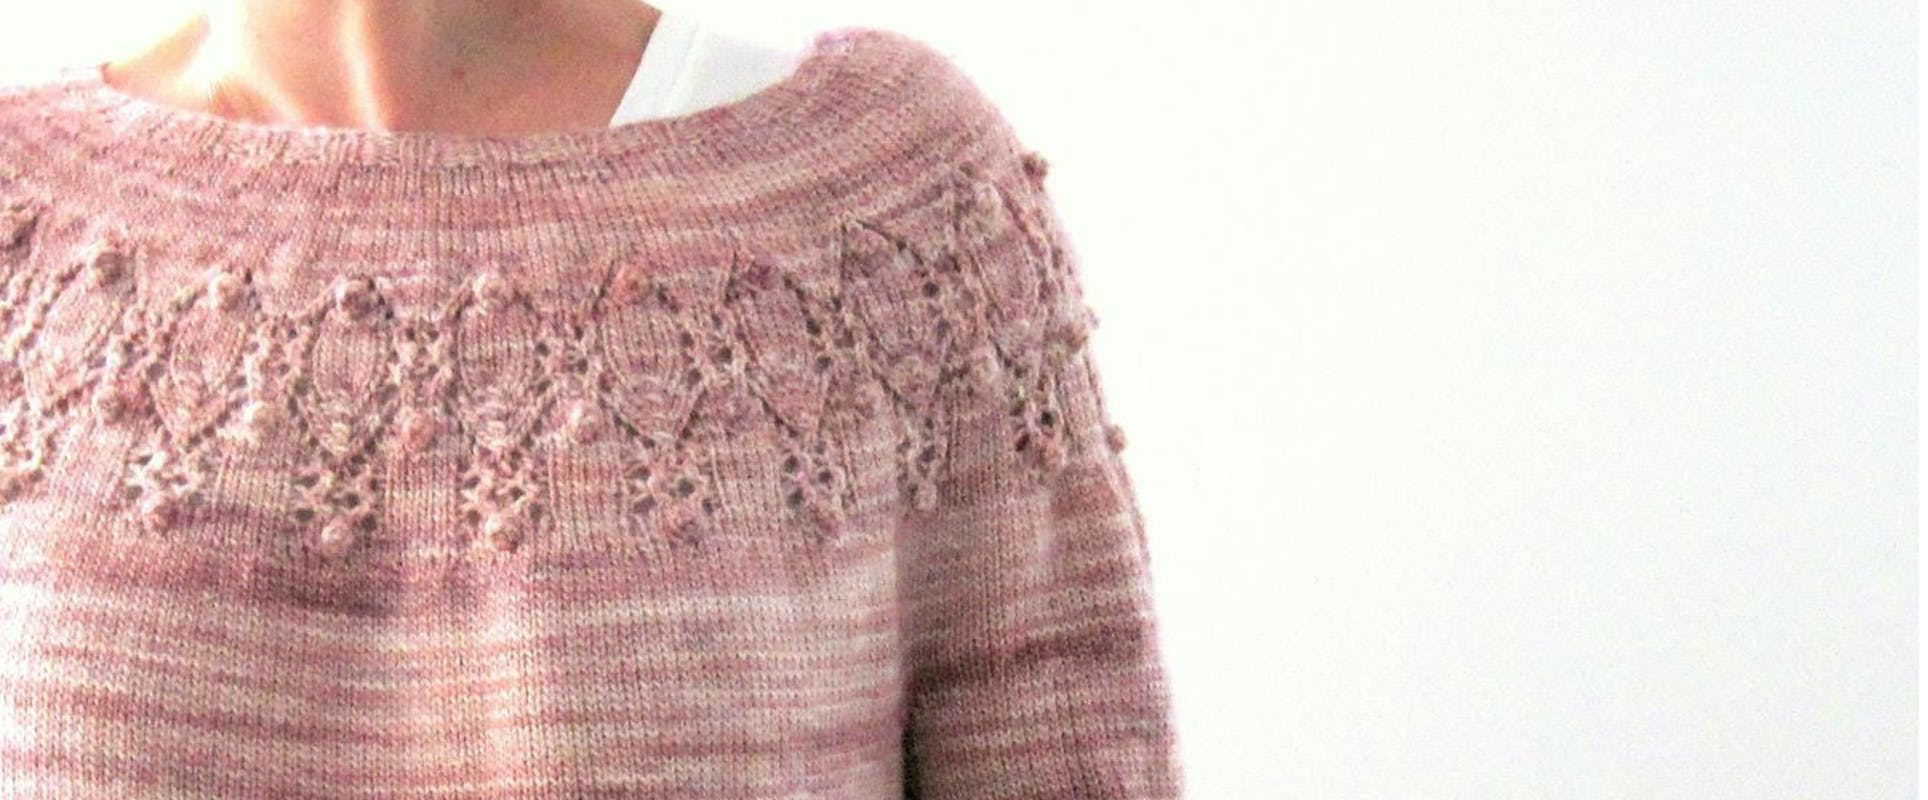 Crochet Daisy Yoke Cardigan Pattern PDF to Email or Posted